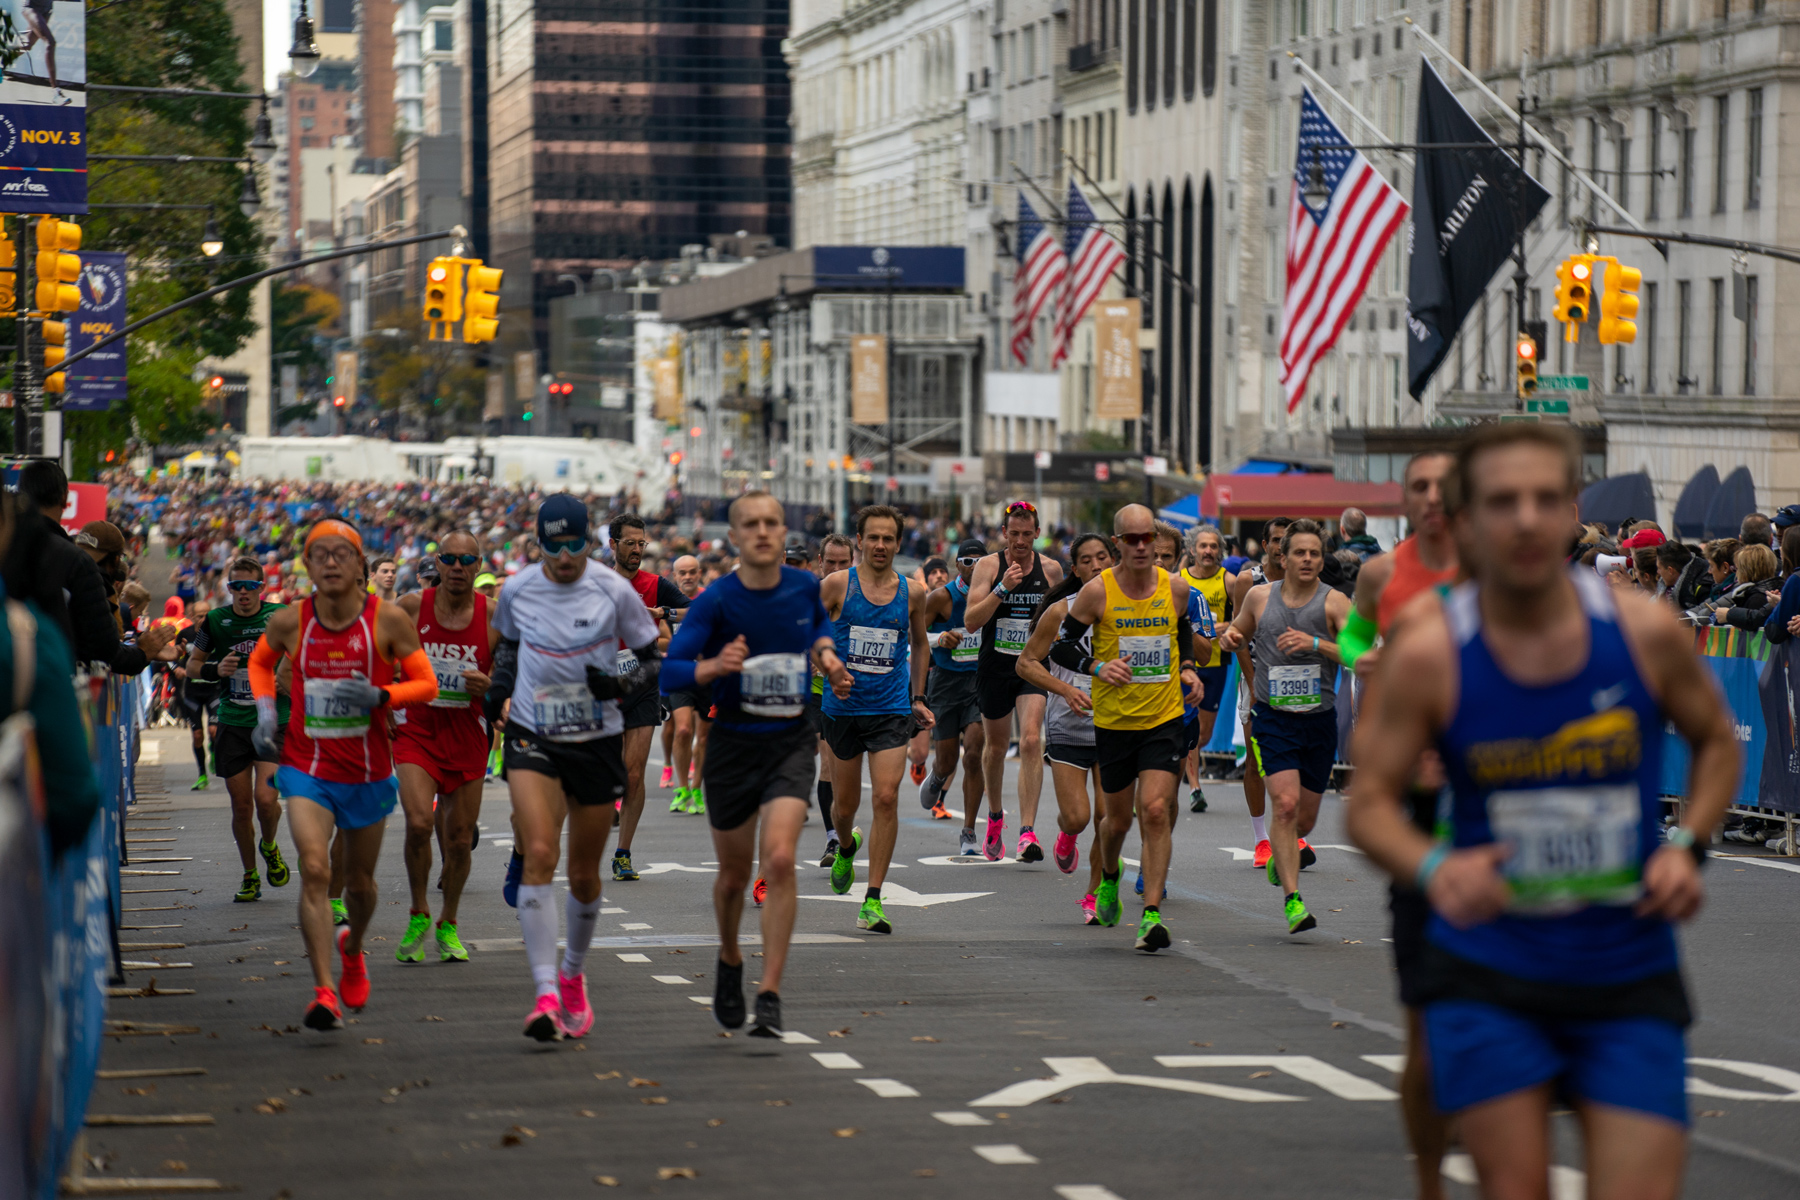 Runners are seen during the 2019 TCS New York City Marathon